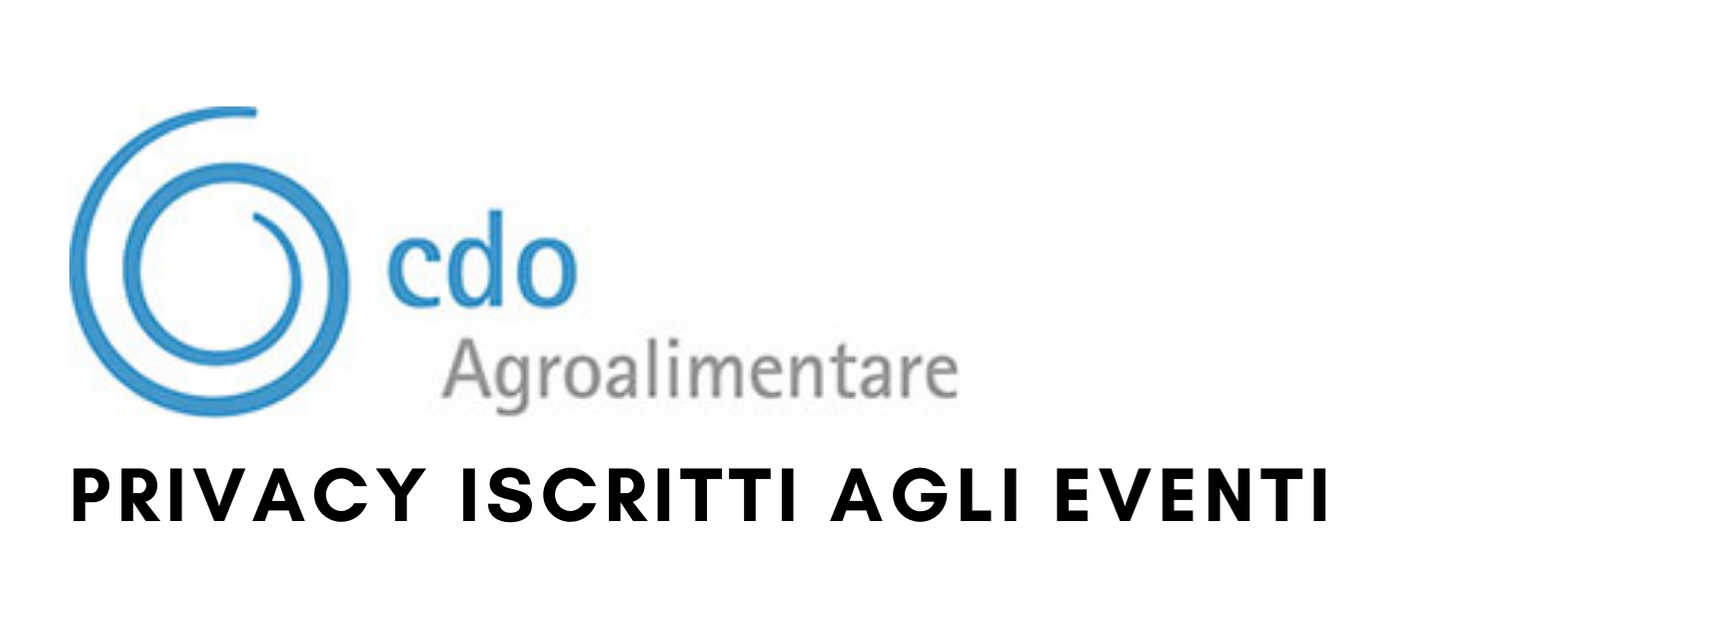 Privacy Eventi Cdo Agro